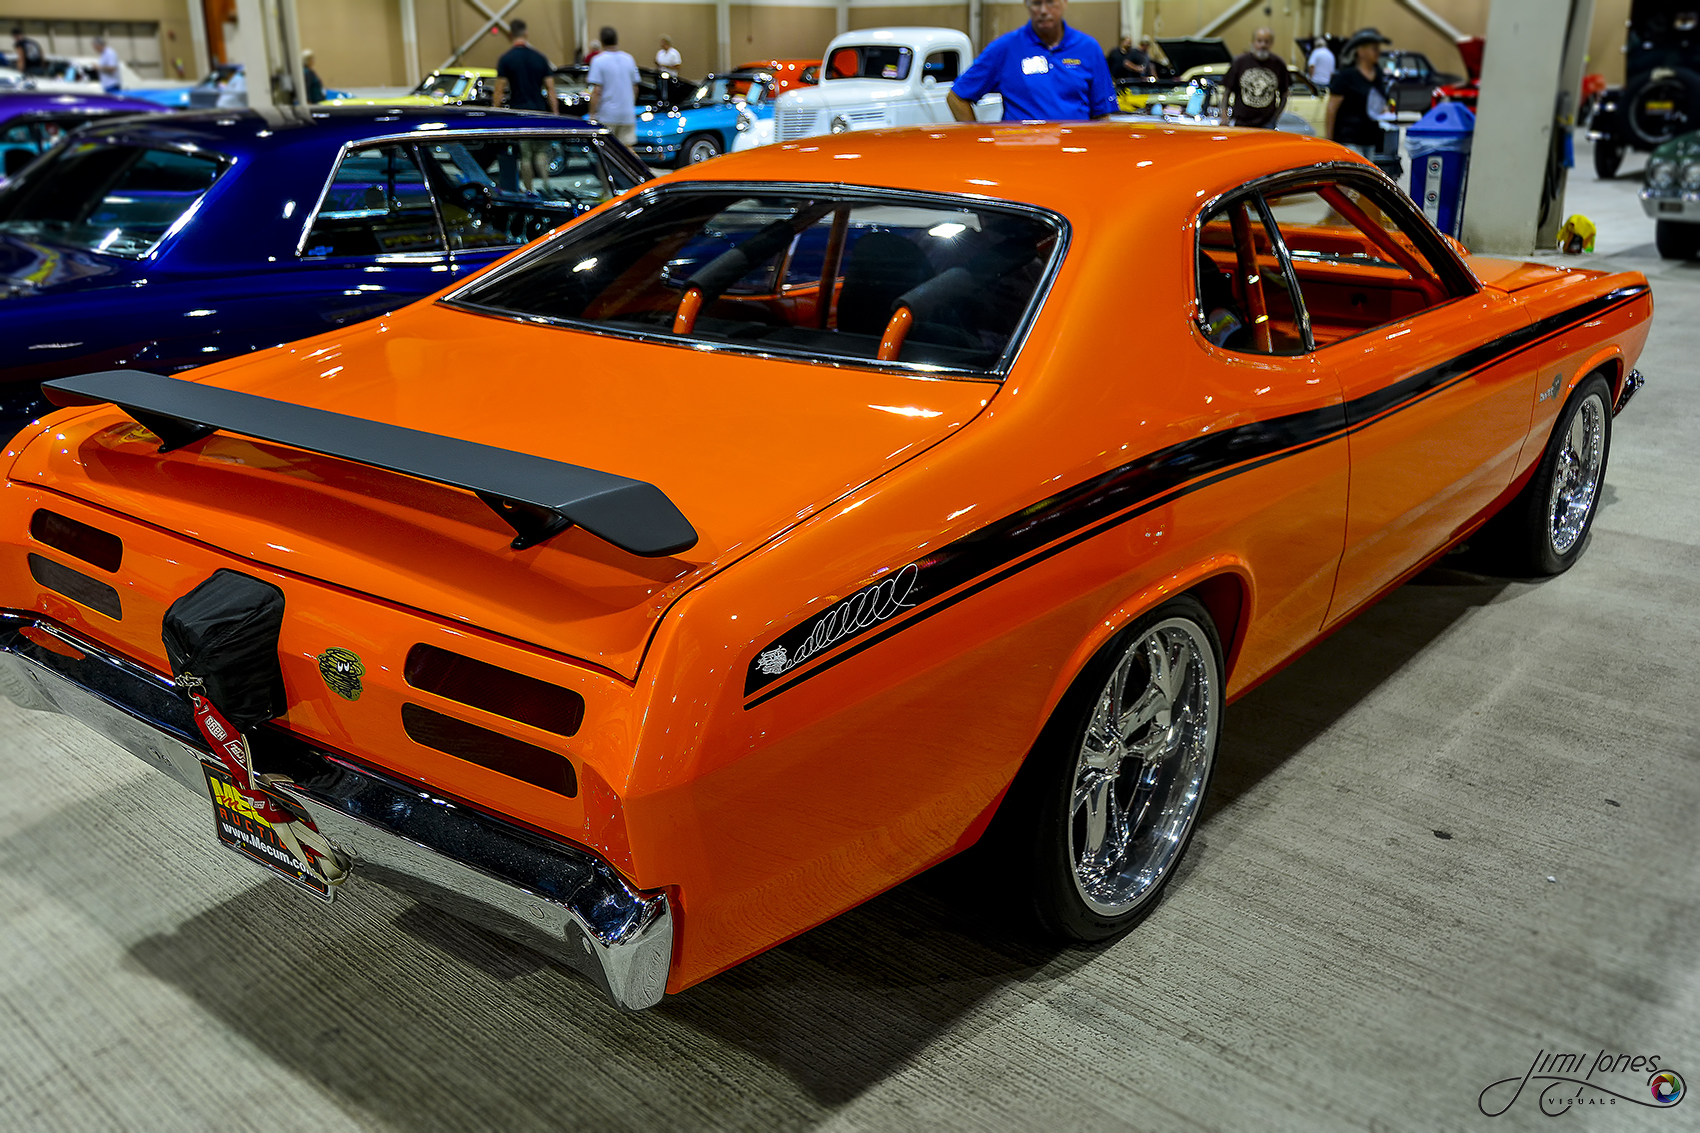 1970 Plymouth Duster - Angled View